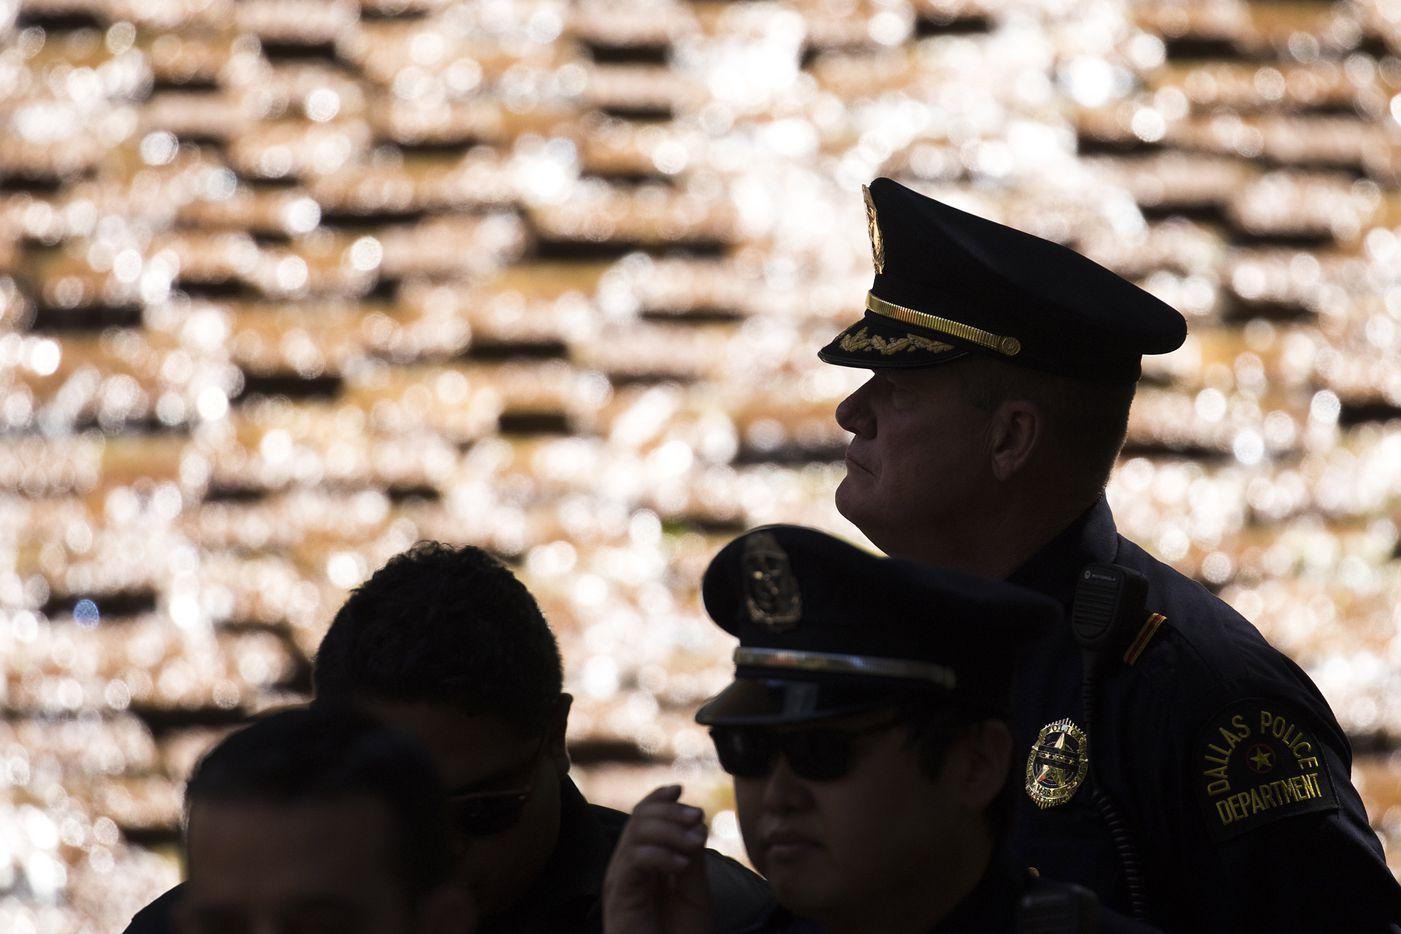 Members of the Dallas police department are silhouetted against the water cascading down the Great Fountain during a day of remembrance for last year's police ambush organized by Faith Forward Dallas at Thanks-Giving Square on Friday, July 7, 2017, in Dallas. Friday marked the one-year anniversary of the attack which killed five police officers.